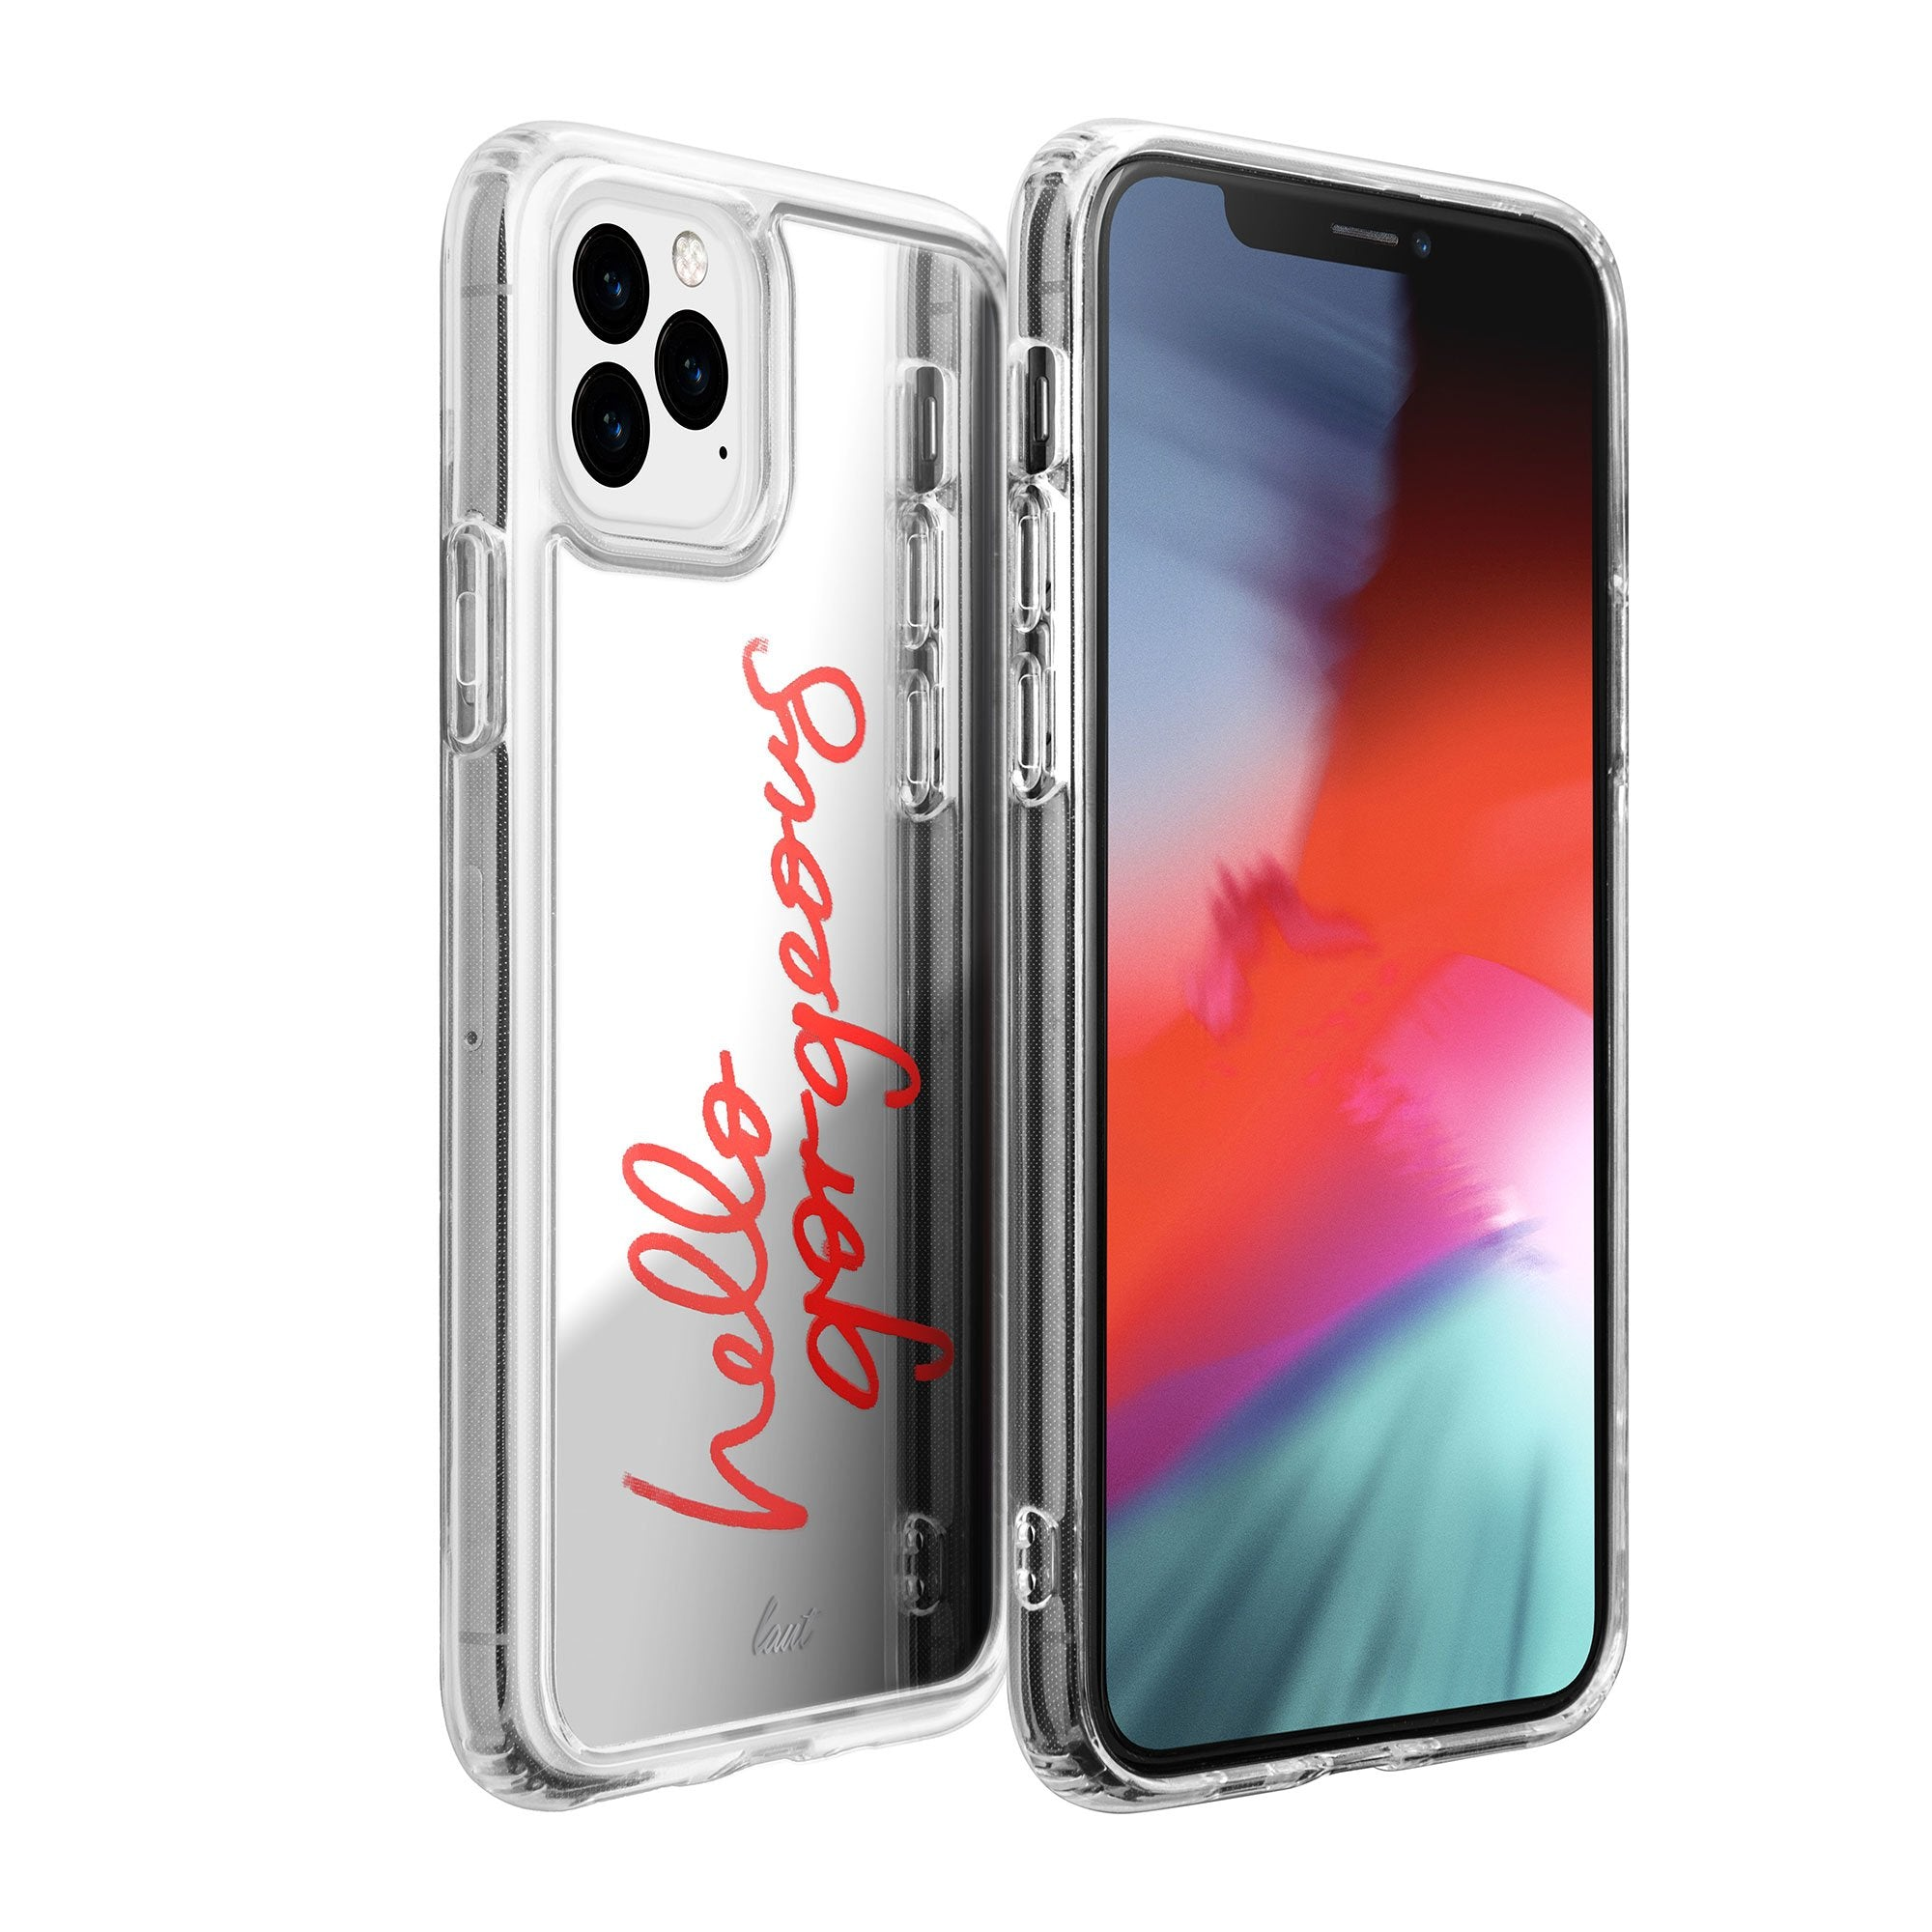 LAUT-MIRROR for iPhone 11 Series-Case-iPhone 11 / iPhone 11 Pro / iPhone 11 Pro Max